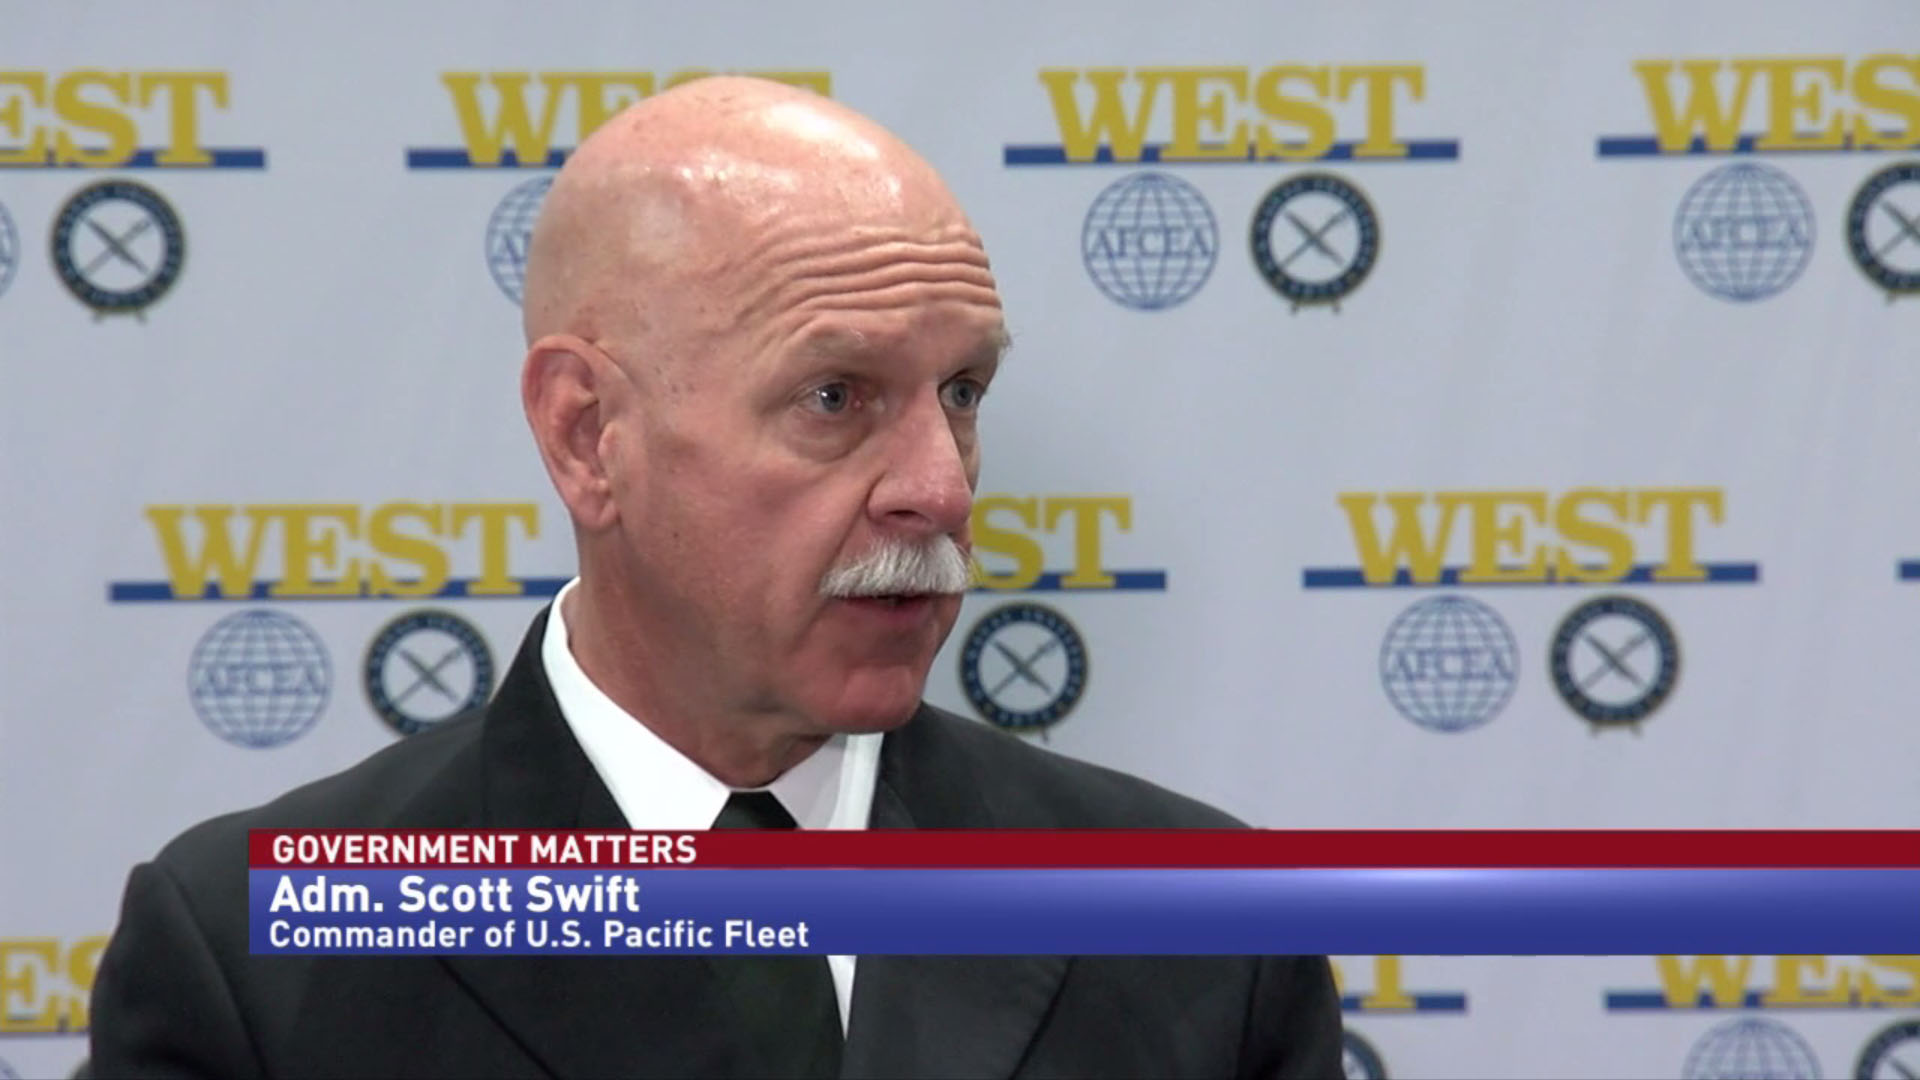 Readiness & lethality of the U.S. Pacific Fleet